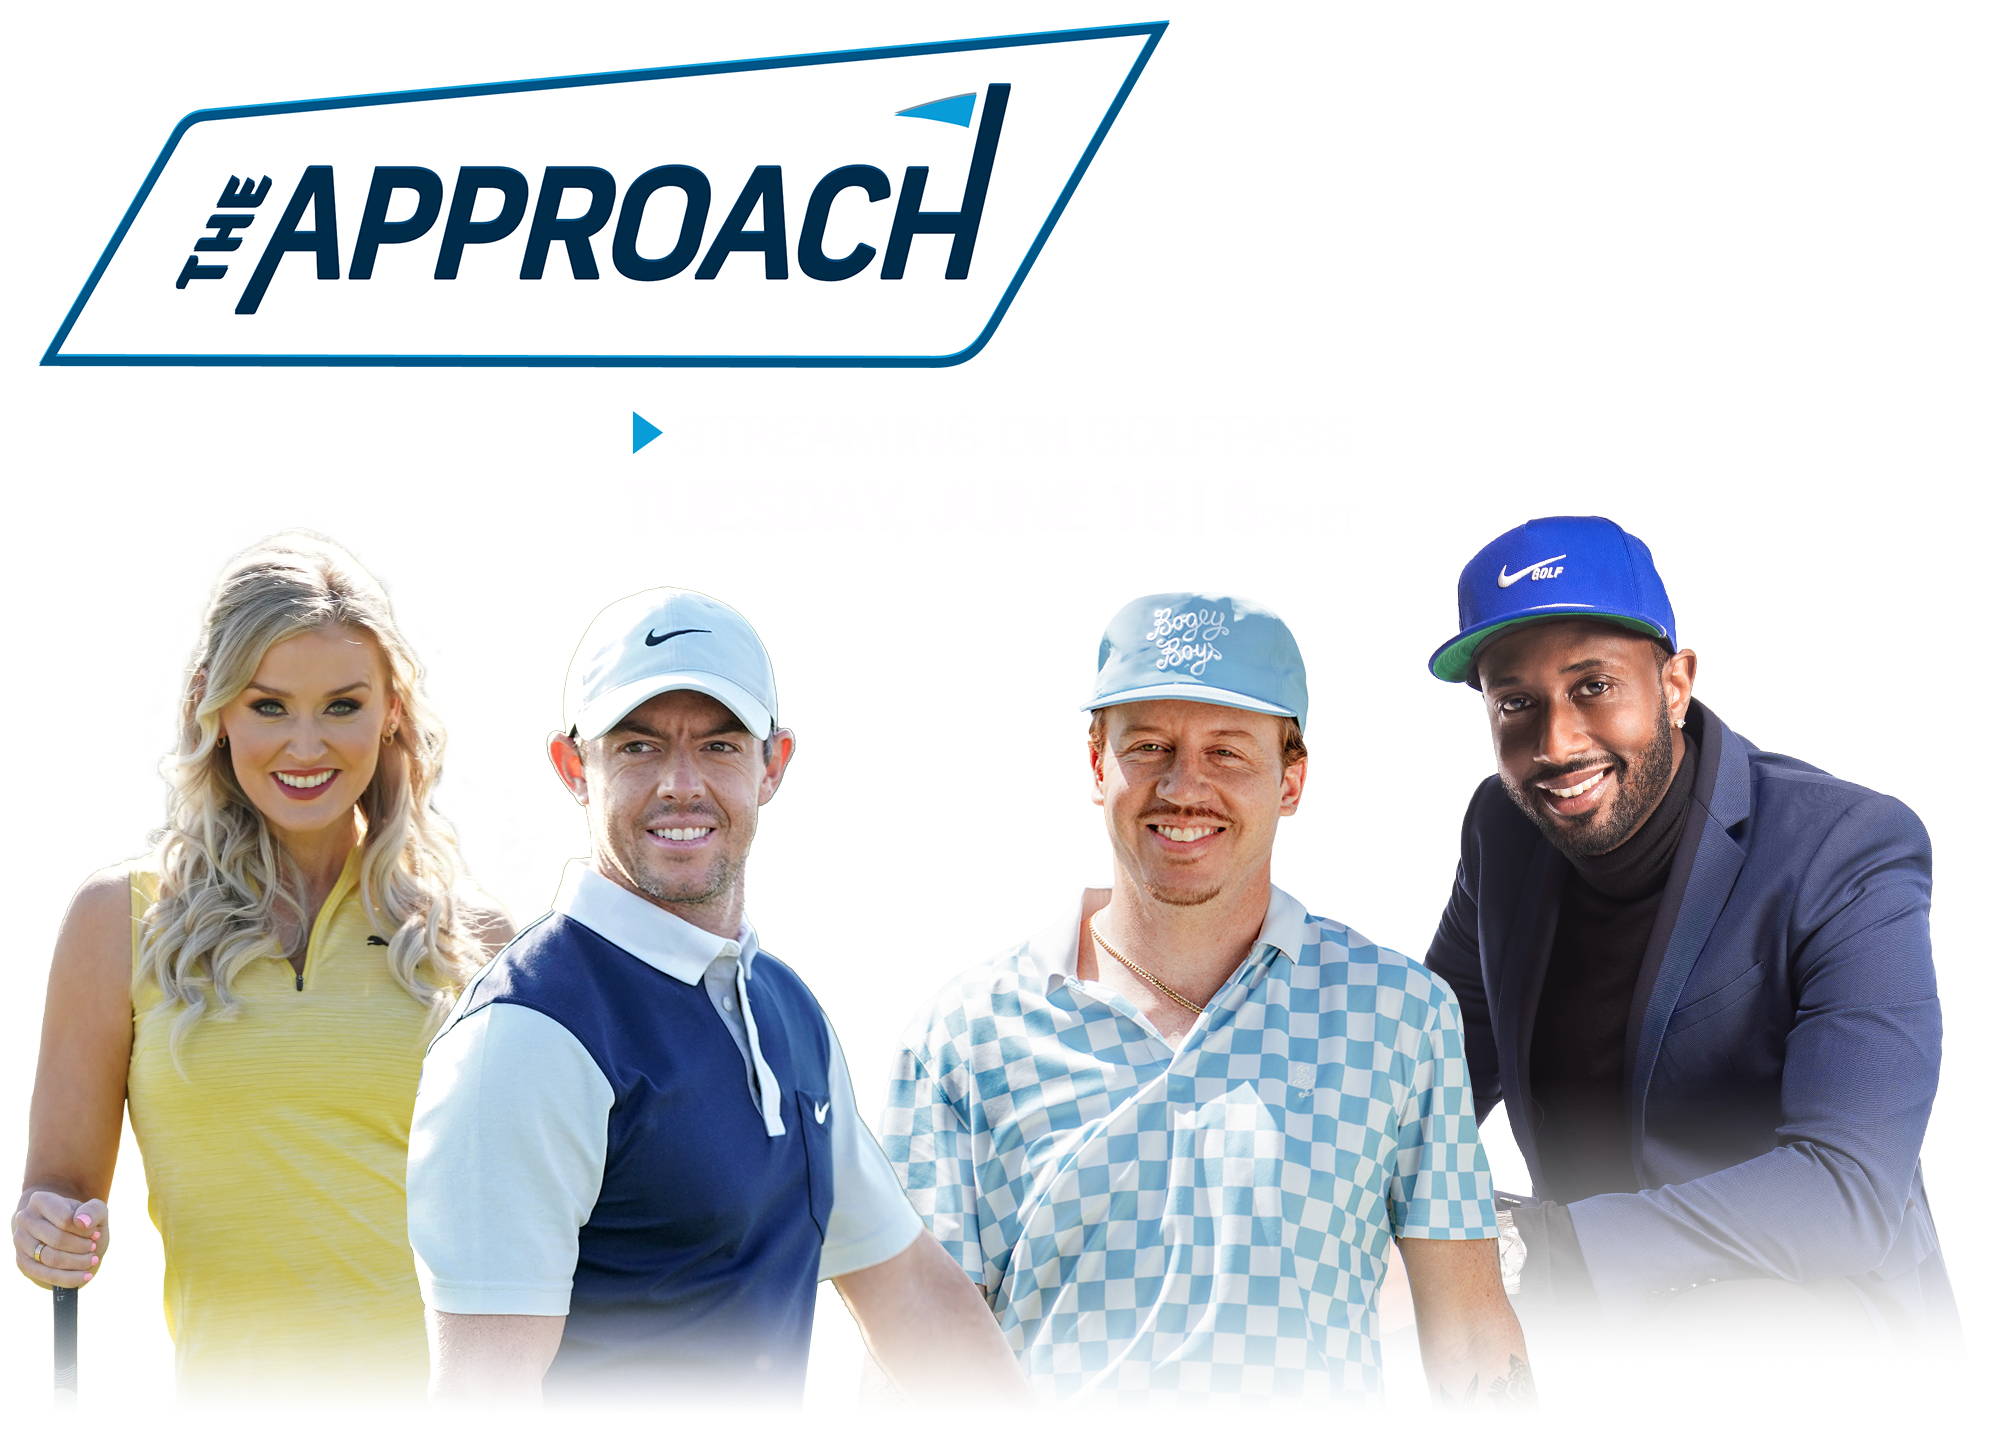 The Approach. All things golf. But different. June 15, 8pm EDT